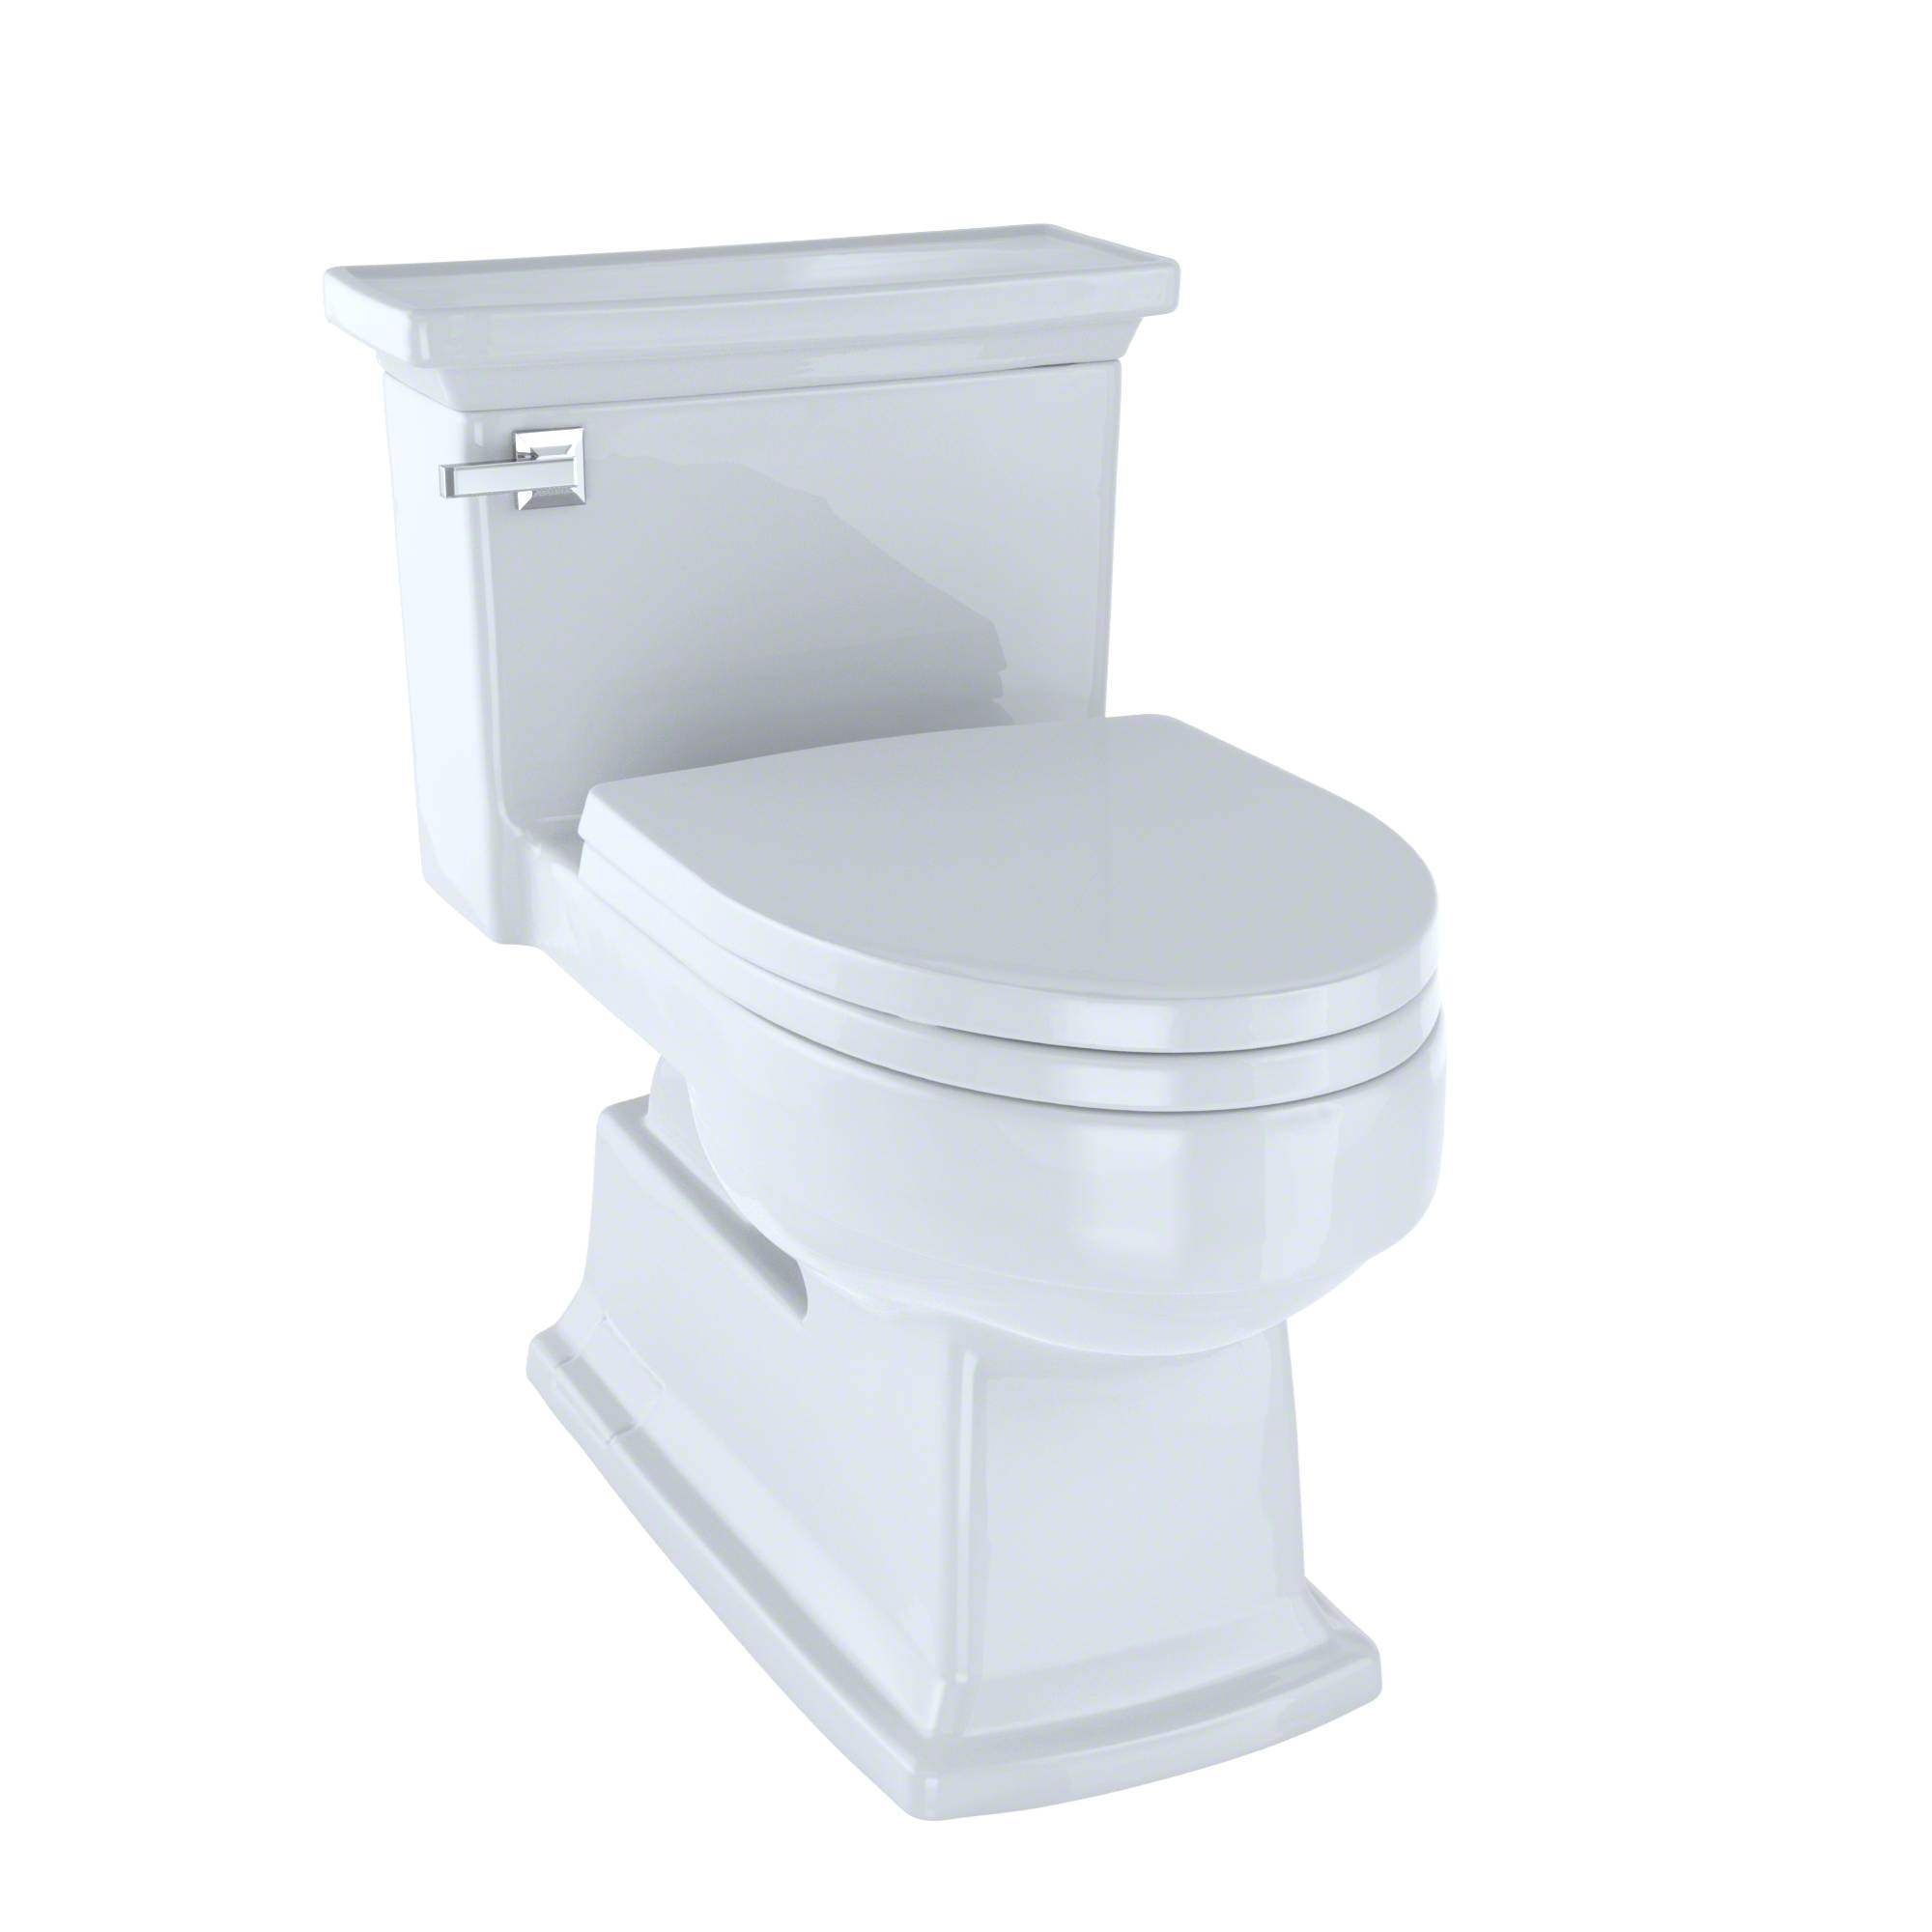 Toto Lloyd Elongated One Piece Toilet MS934214EF#01 Cotton White ...